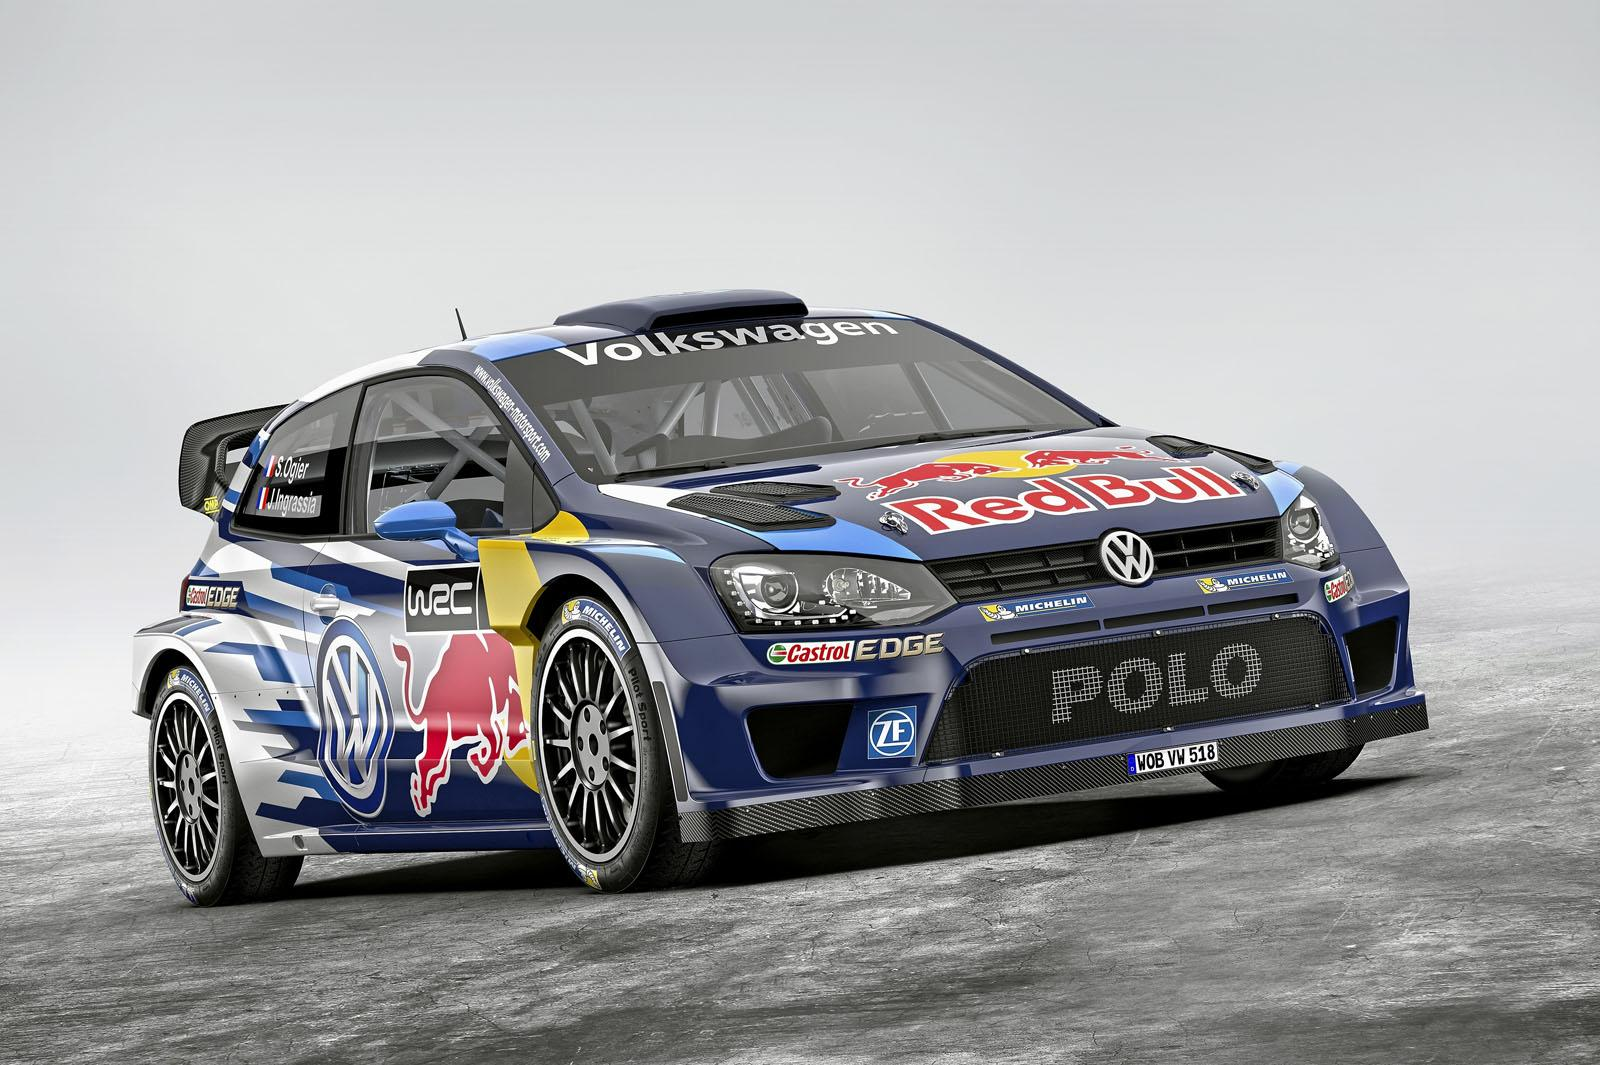 volkswagen polo r wrc 2015 breakthewrc. Black Bedroom Furniture Sets. Home Design Ideas